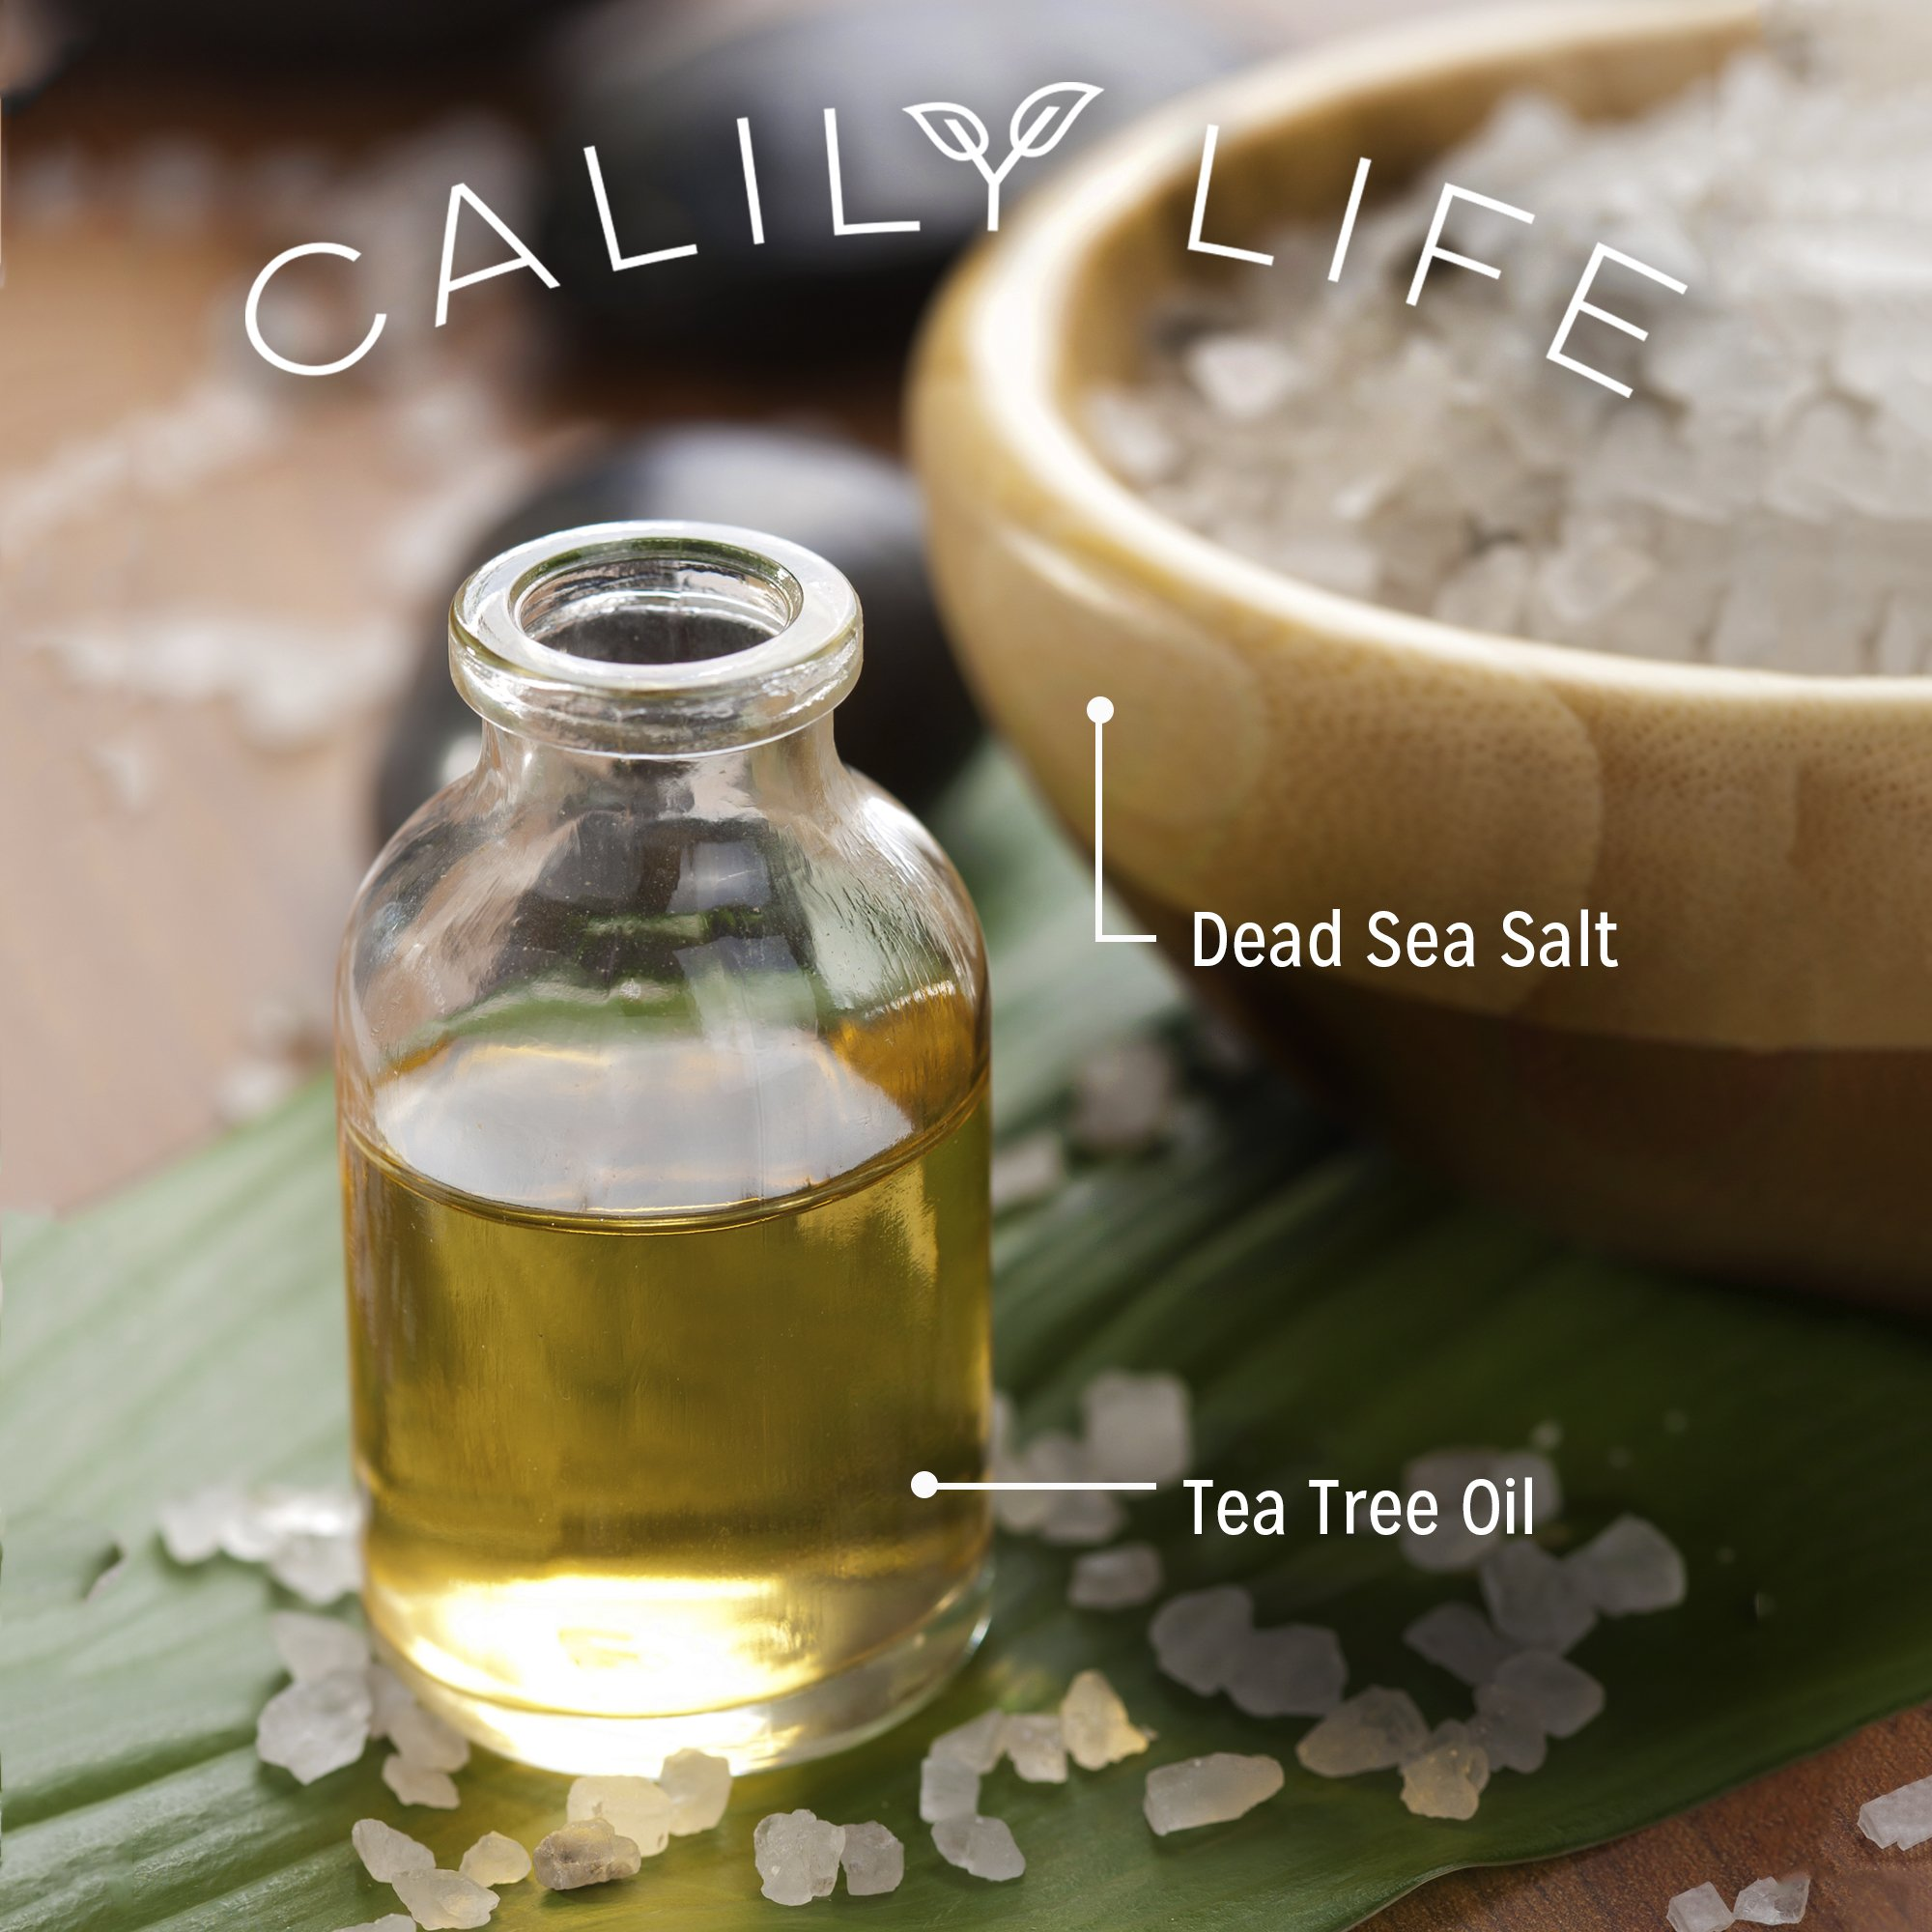 Calily Life Organic Tea Tree Oil Antibacterial Body Wash with Dead Sea Minerals, 33. 8 Fl. Oz. – Enriched with Pure Therapeutic Grade Essential Oils – Combats Bacteria & Fungal Infections [ENHANCED]